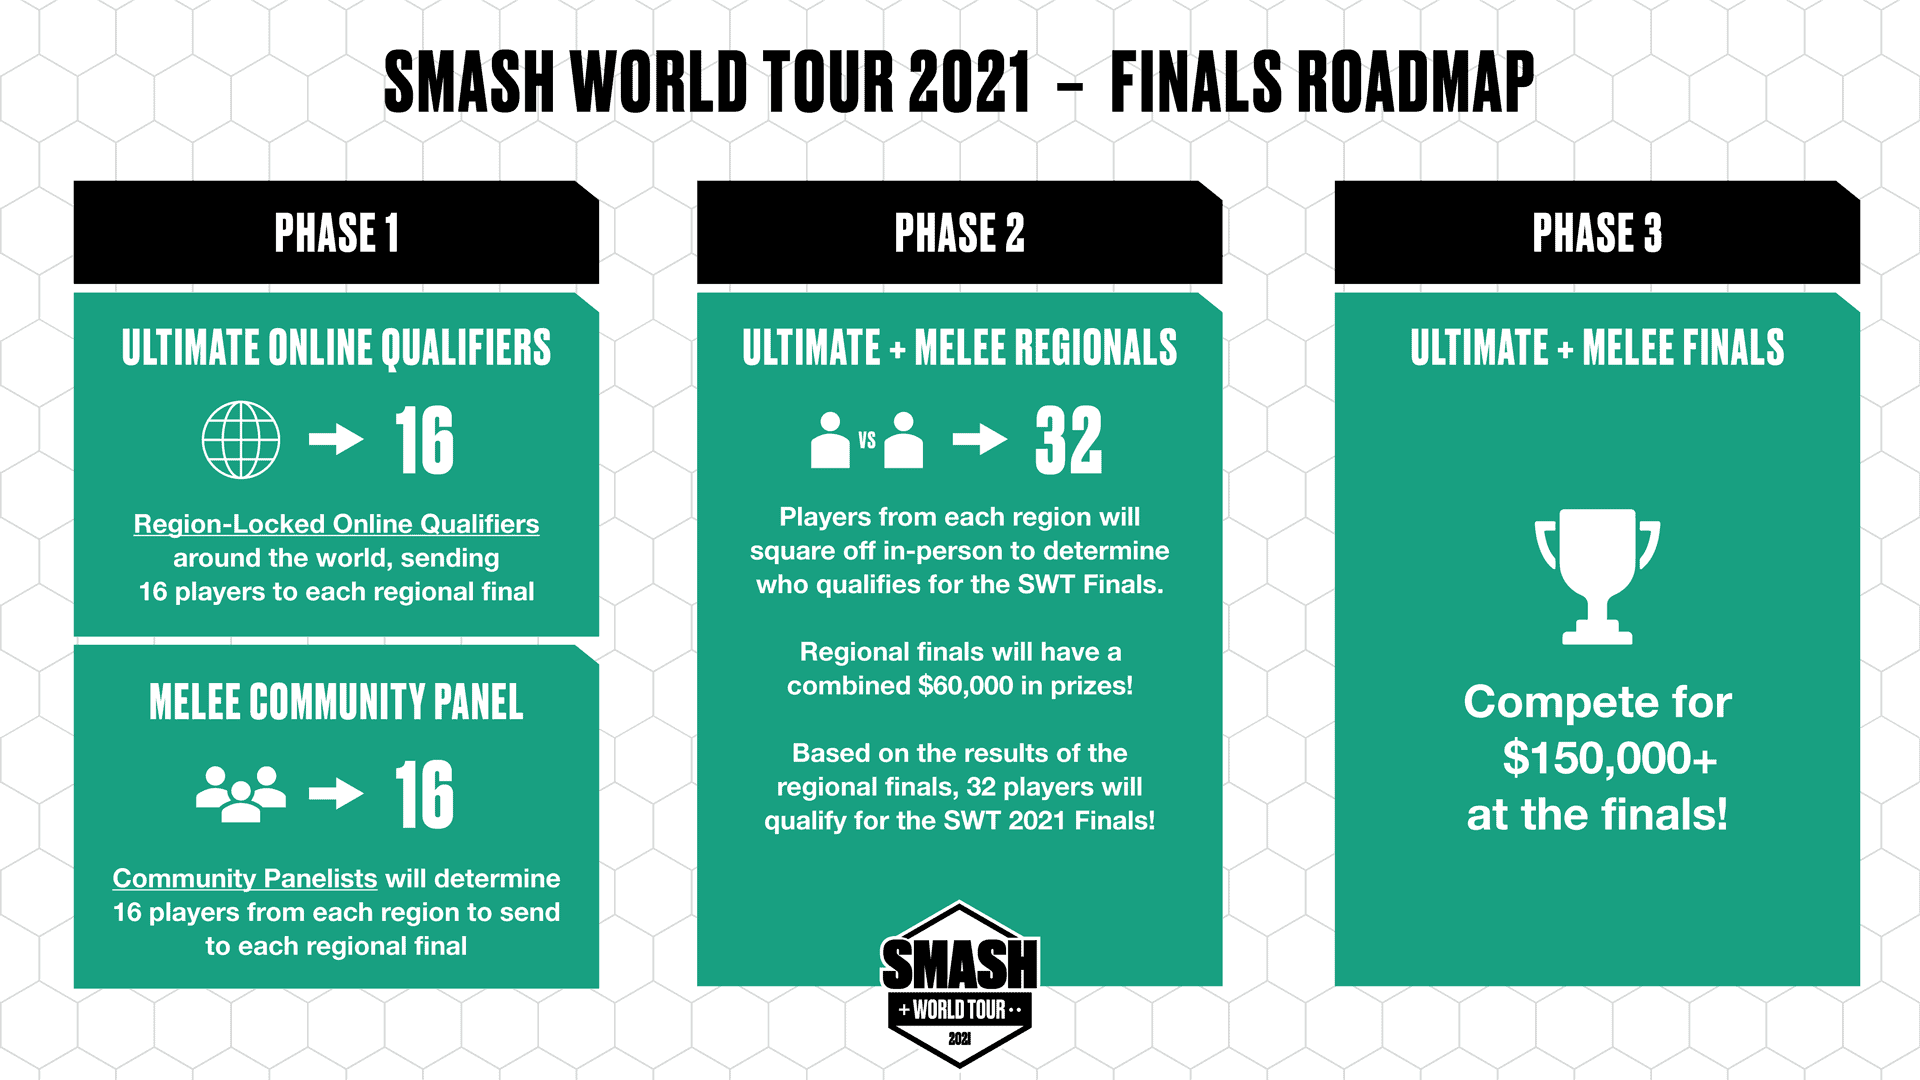 Smash World tour 2021 announced - 250k total in prizes